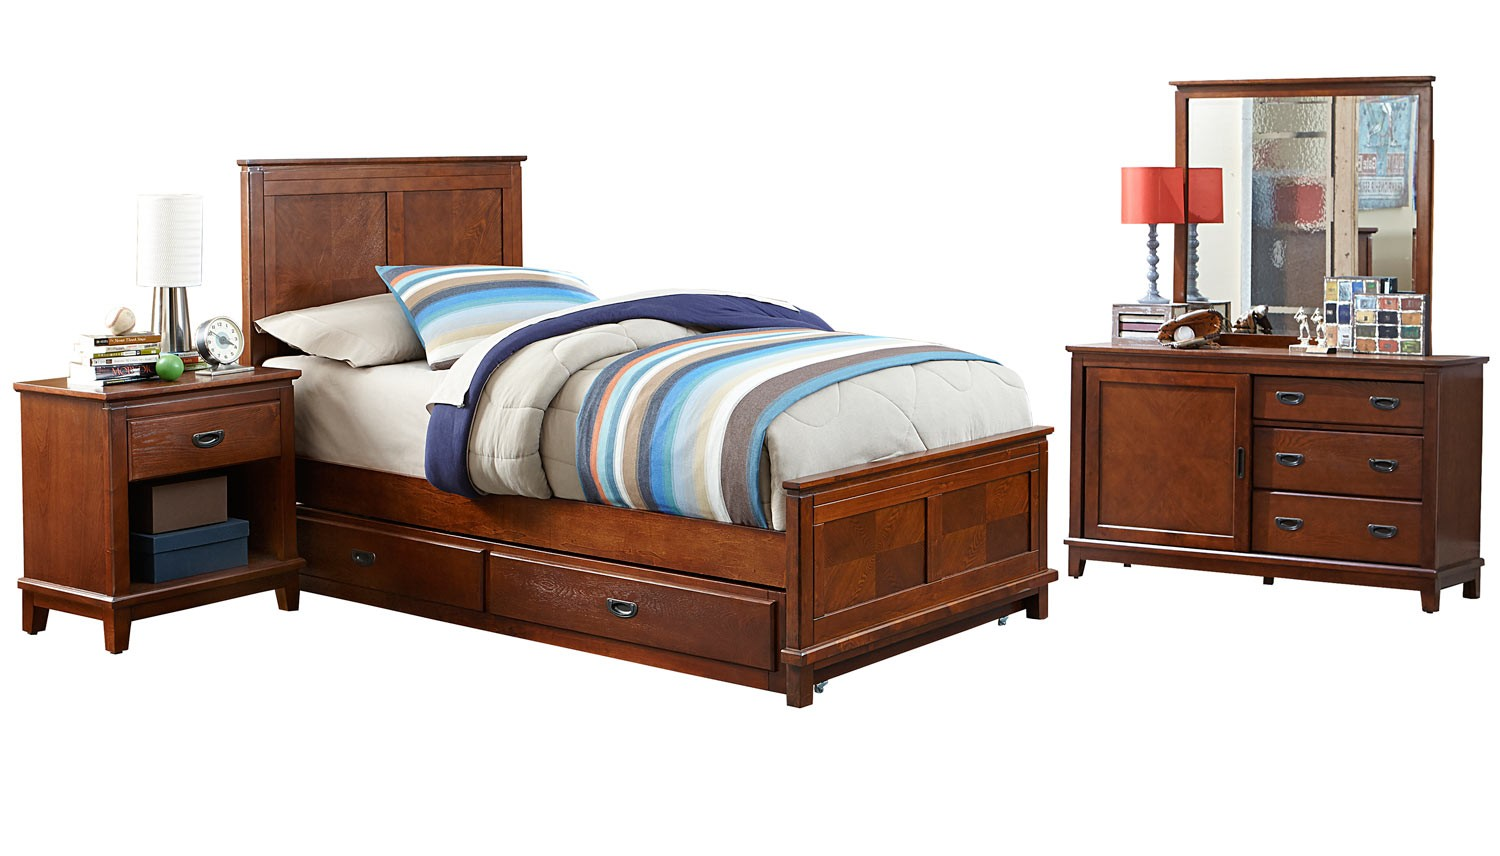 Hillsdale Bailey Panel Bedroom Set with Trundle - Mission Oak